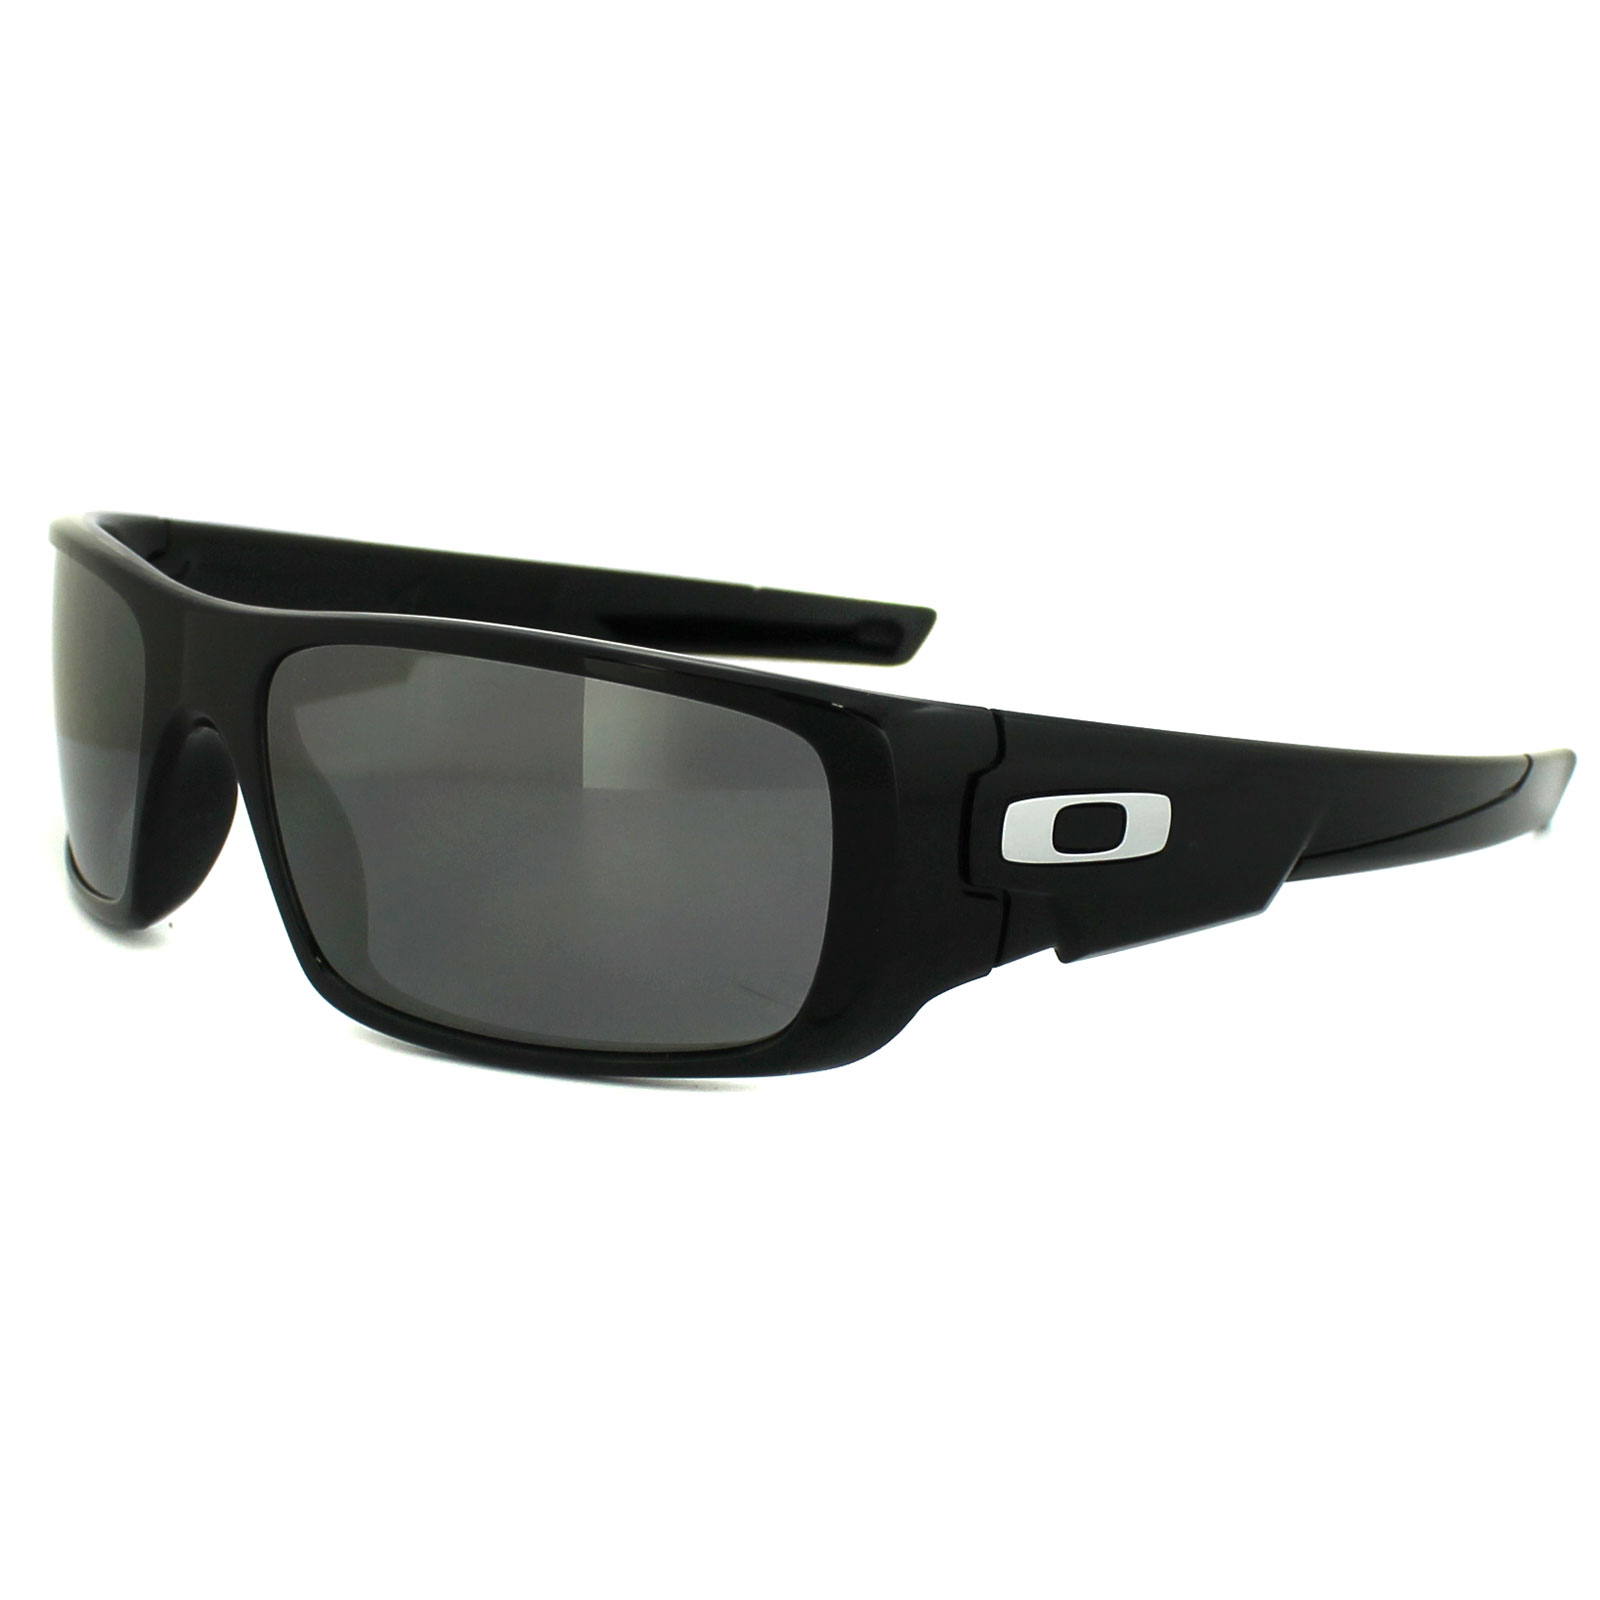 oakley sunglasses black b5ai  Sentinel Oakley Sunglasses Crankshaft OO9239-01 Polished Black Black Iridium